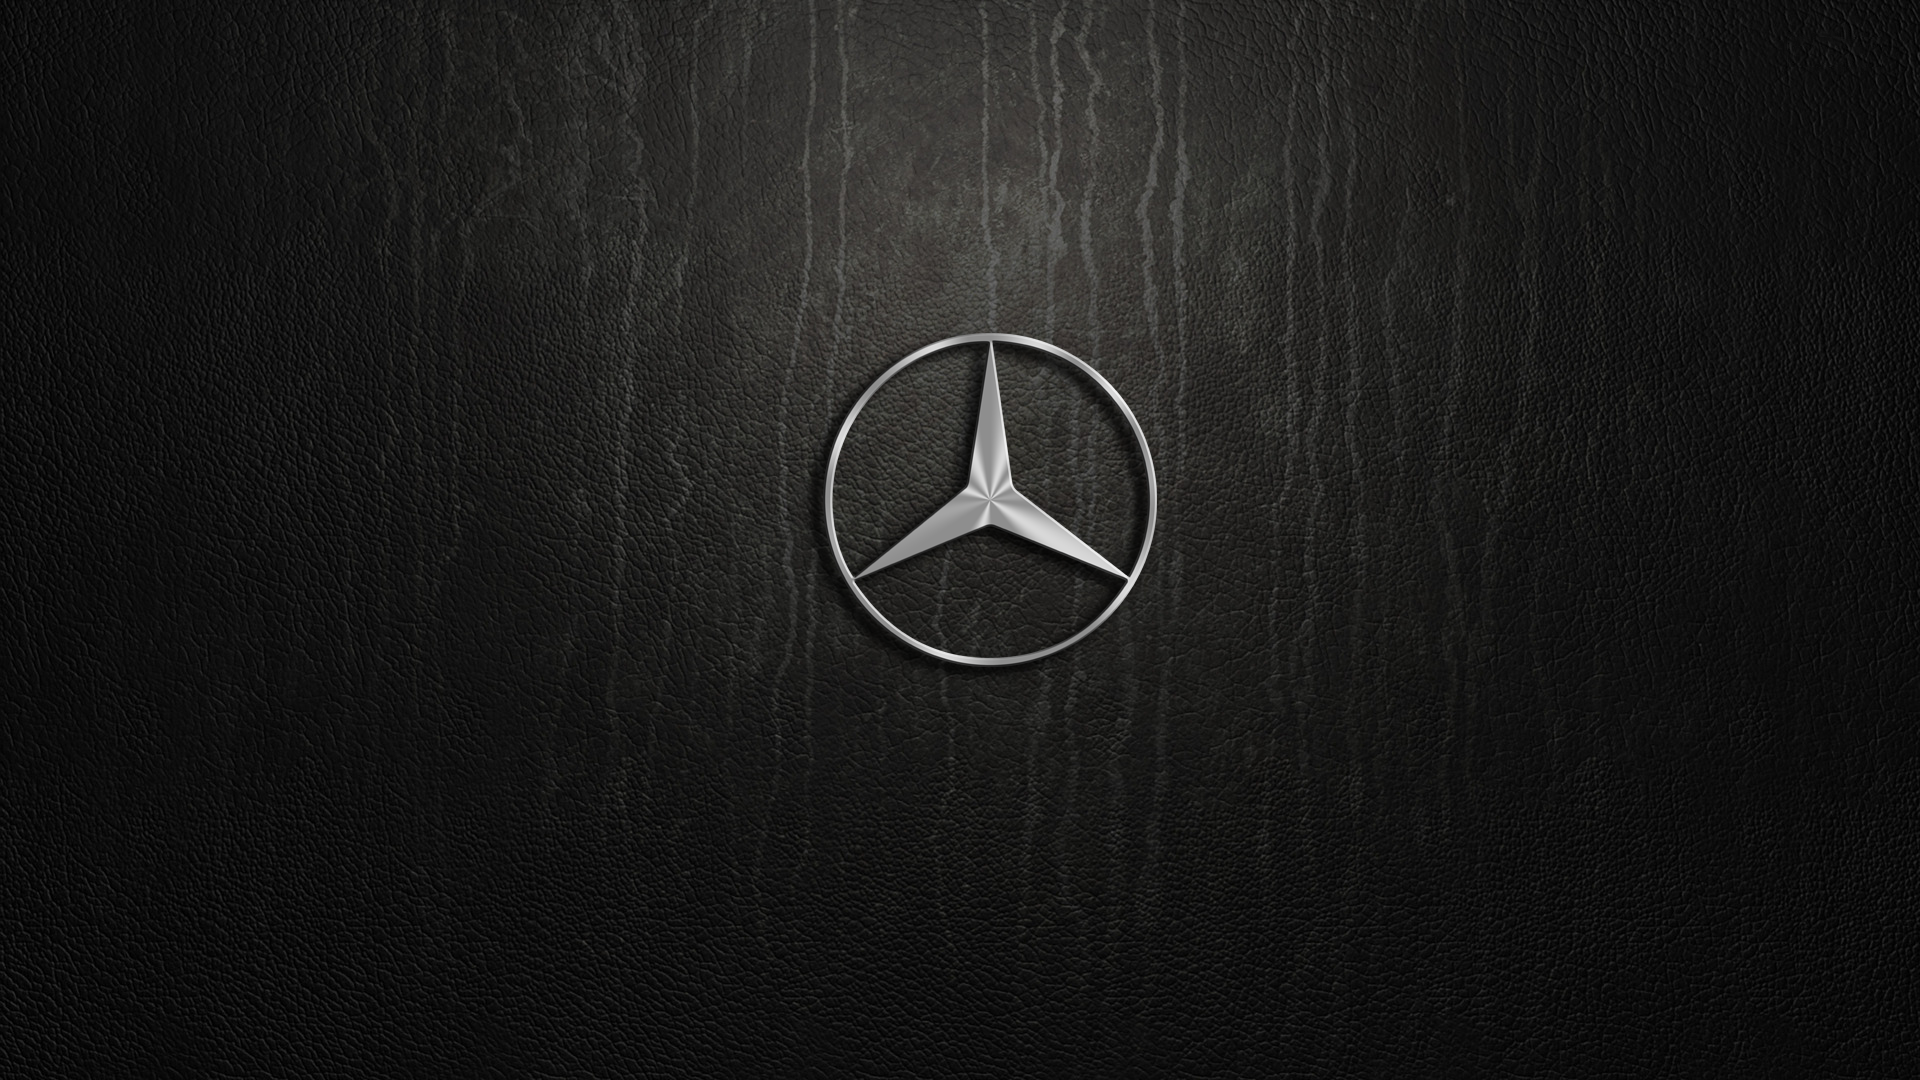 Free Mercedes Wallpapers Images Mersedes Amg Oboi Avtomobili